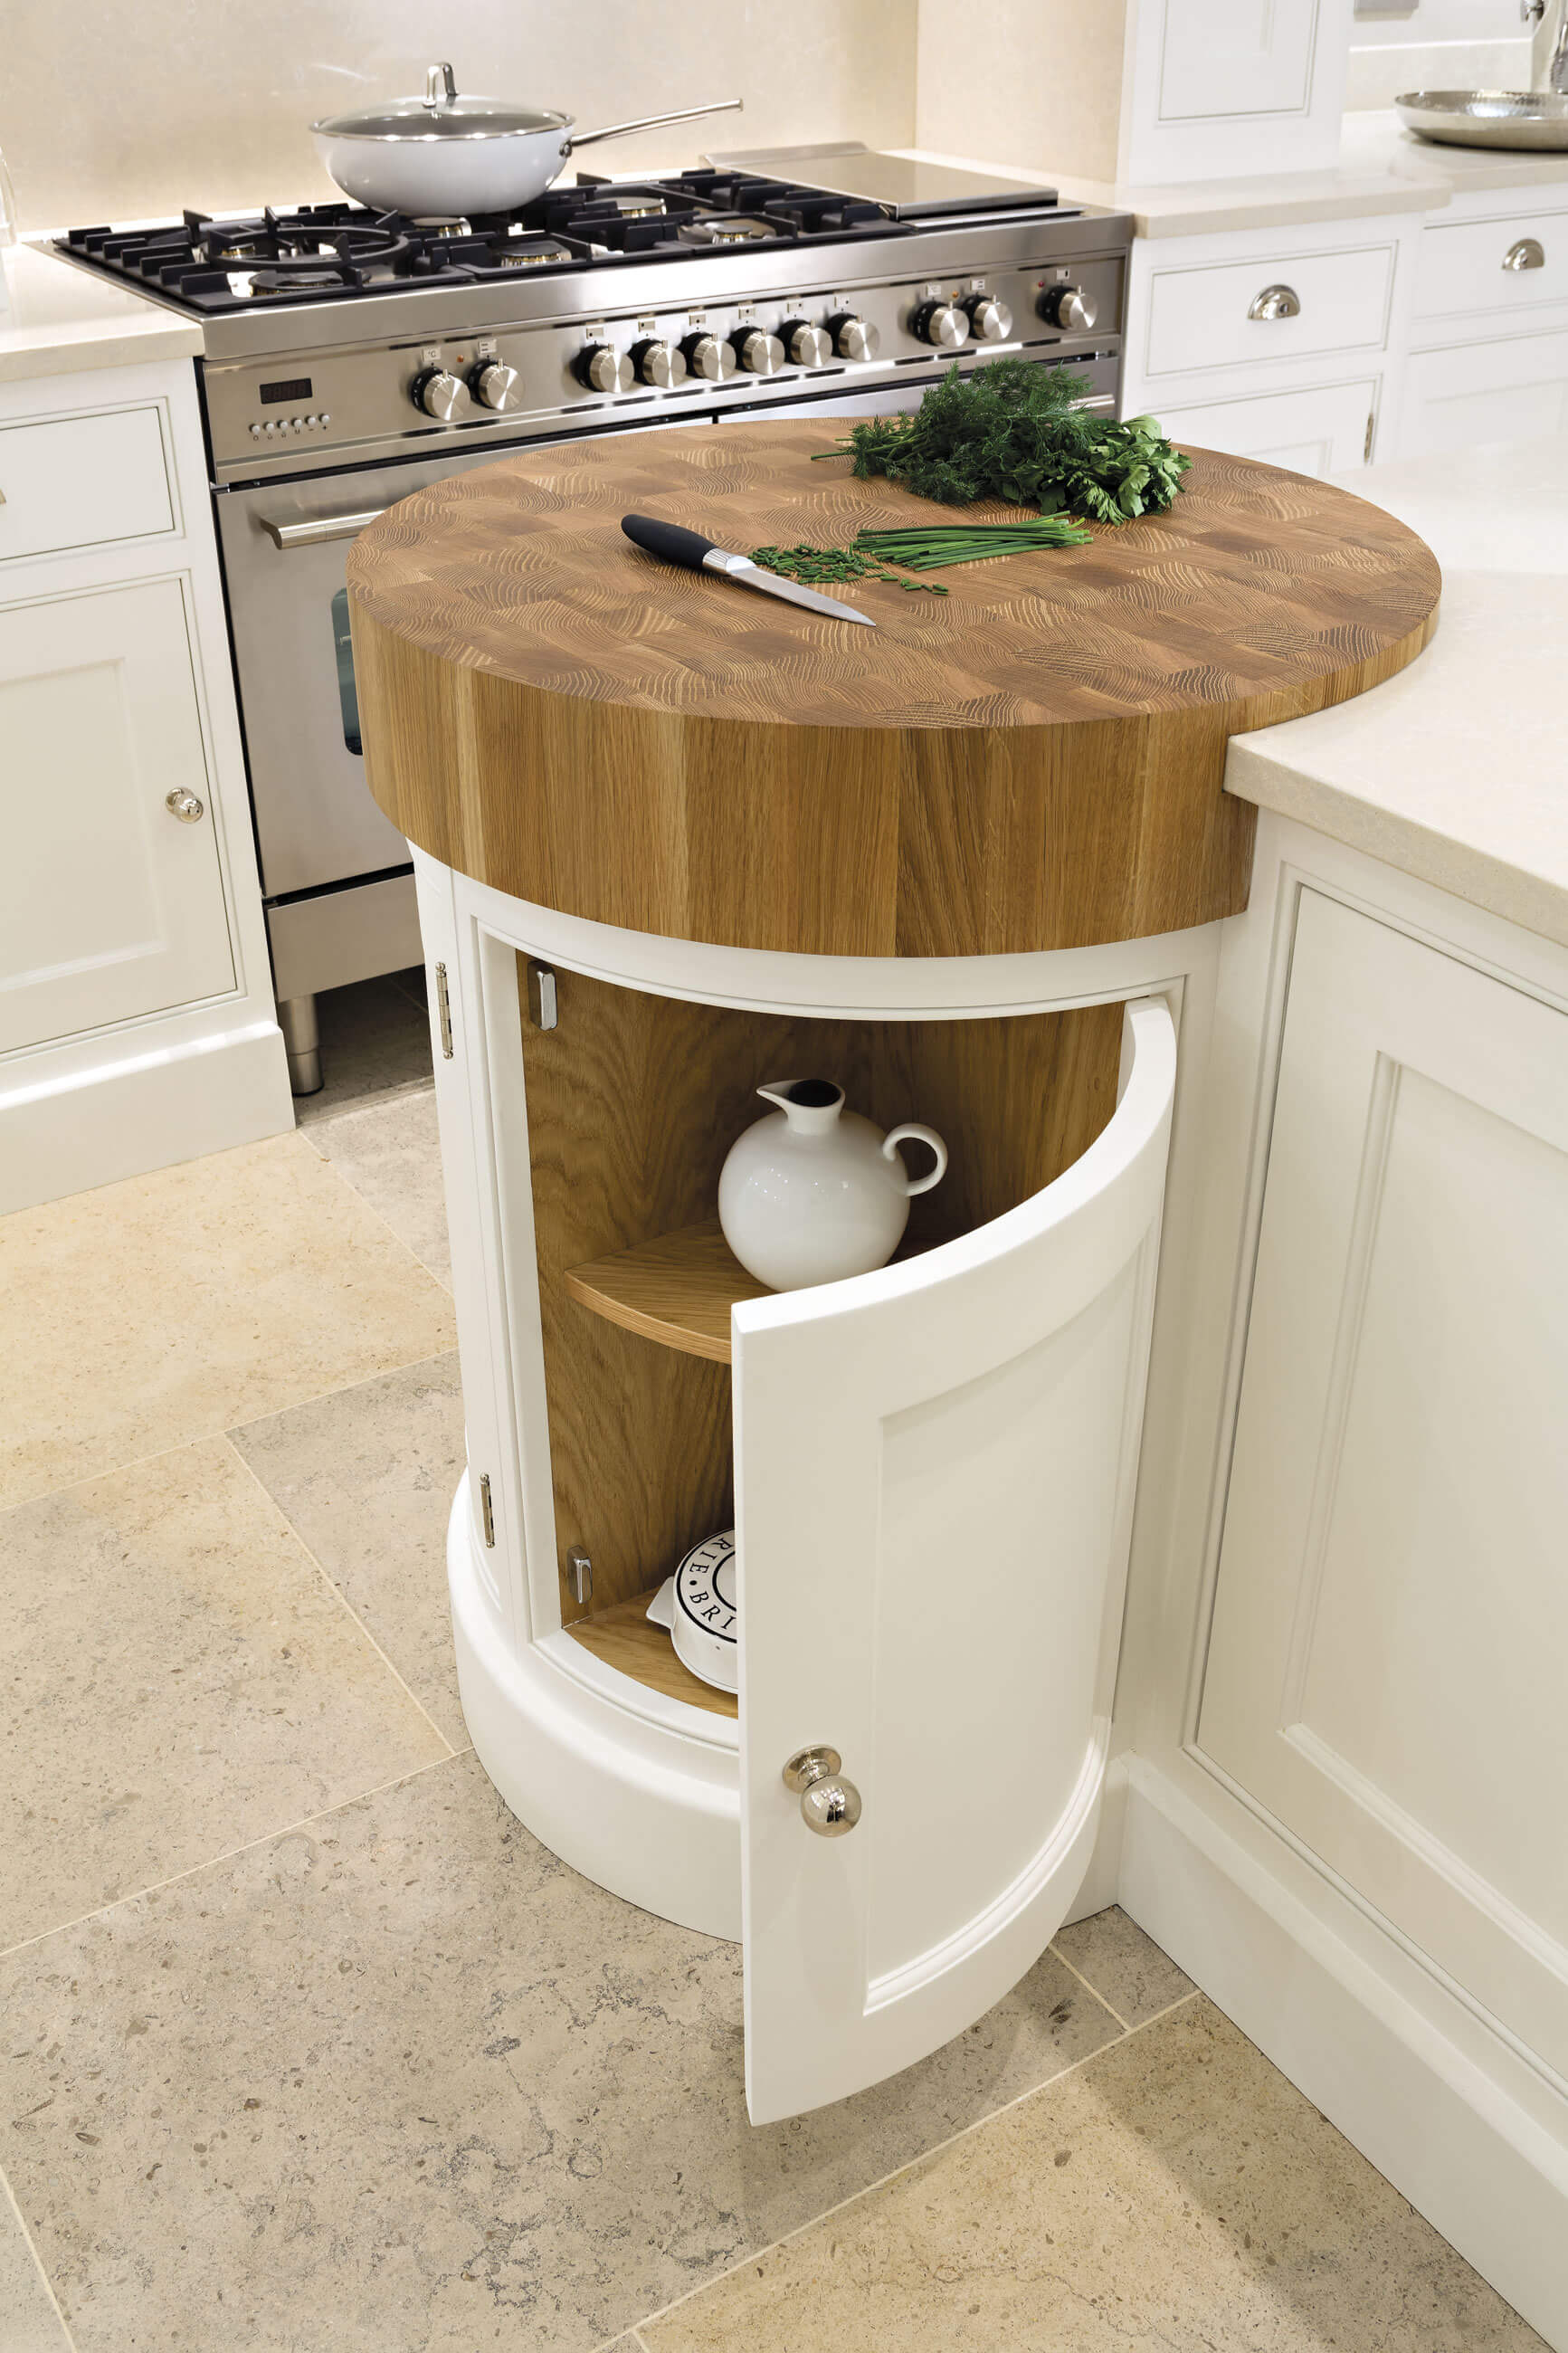 1. Carve Out A Space For The Cutting Board Inside The Kitchen Island